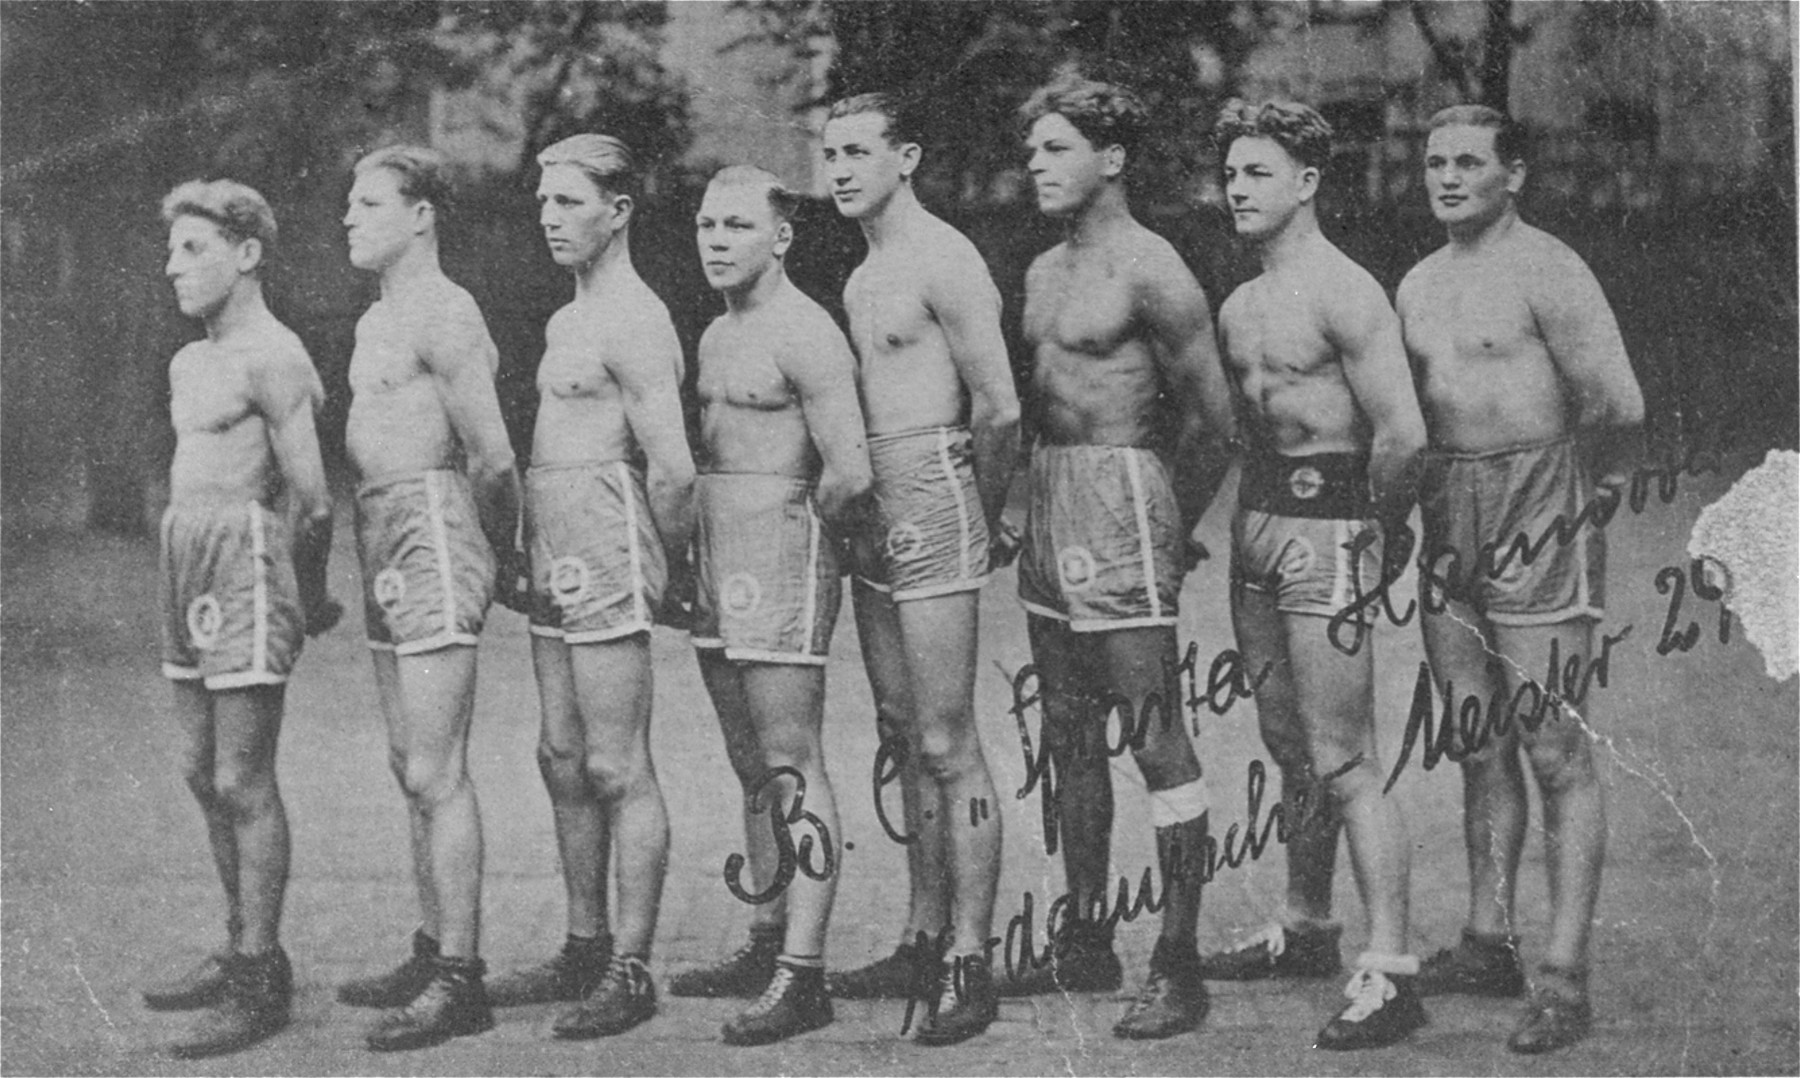 Group portrait of the members of the German boxing club, Sparta, after winning the North German championship.  The Sinti boxing champion, Johann (Rukelie) Trollmann (1906-1943), is pictured third from the right.